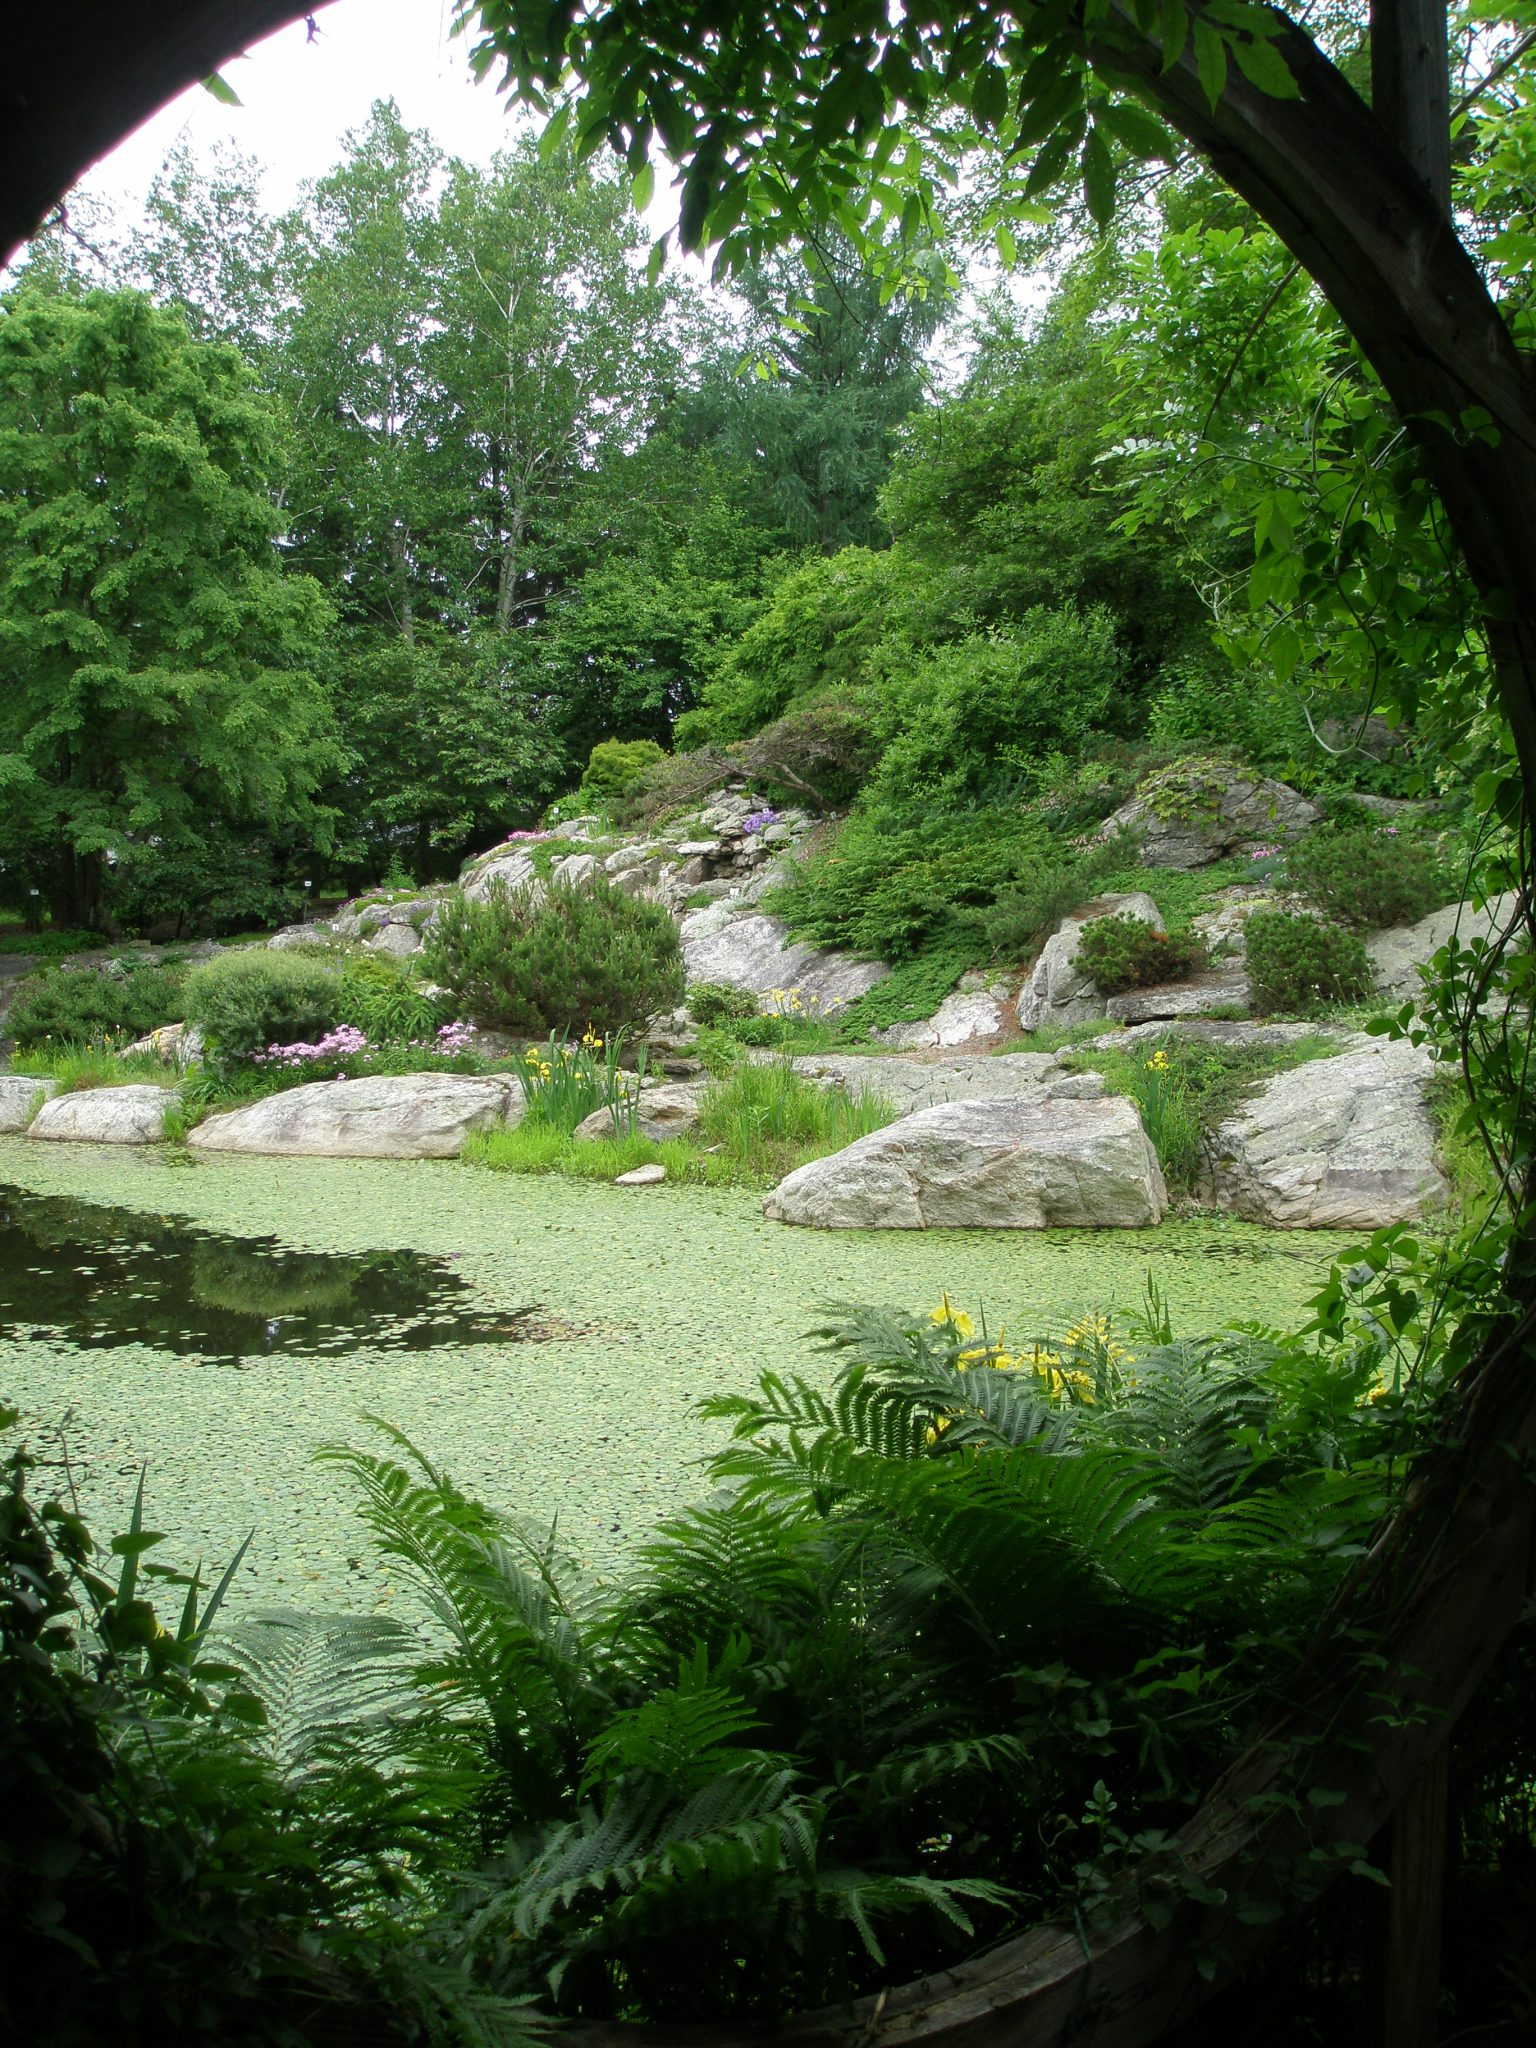 View of Lake and Rock Ledge Garden, from inside the Wisteria Pavilion.